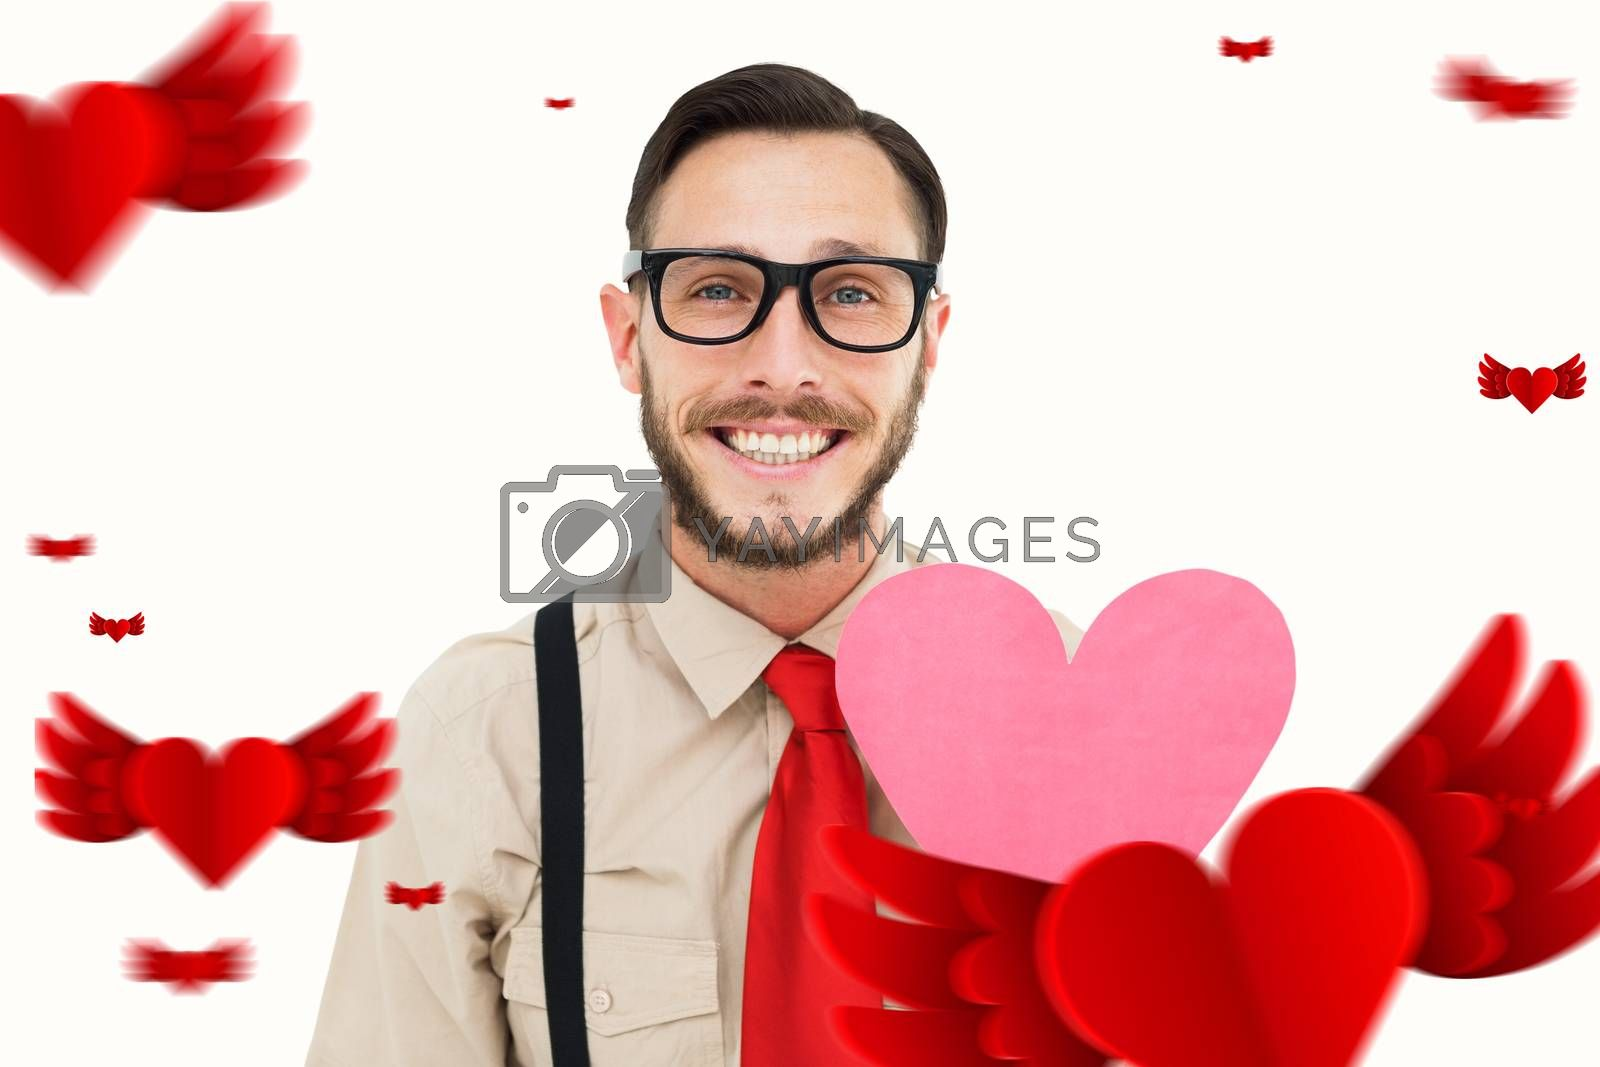 Geeky hipster smiling and holding heart card against hearts